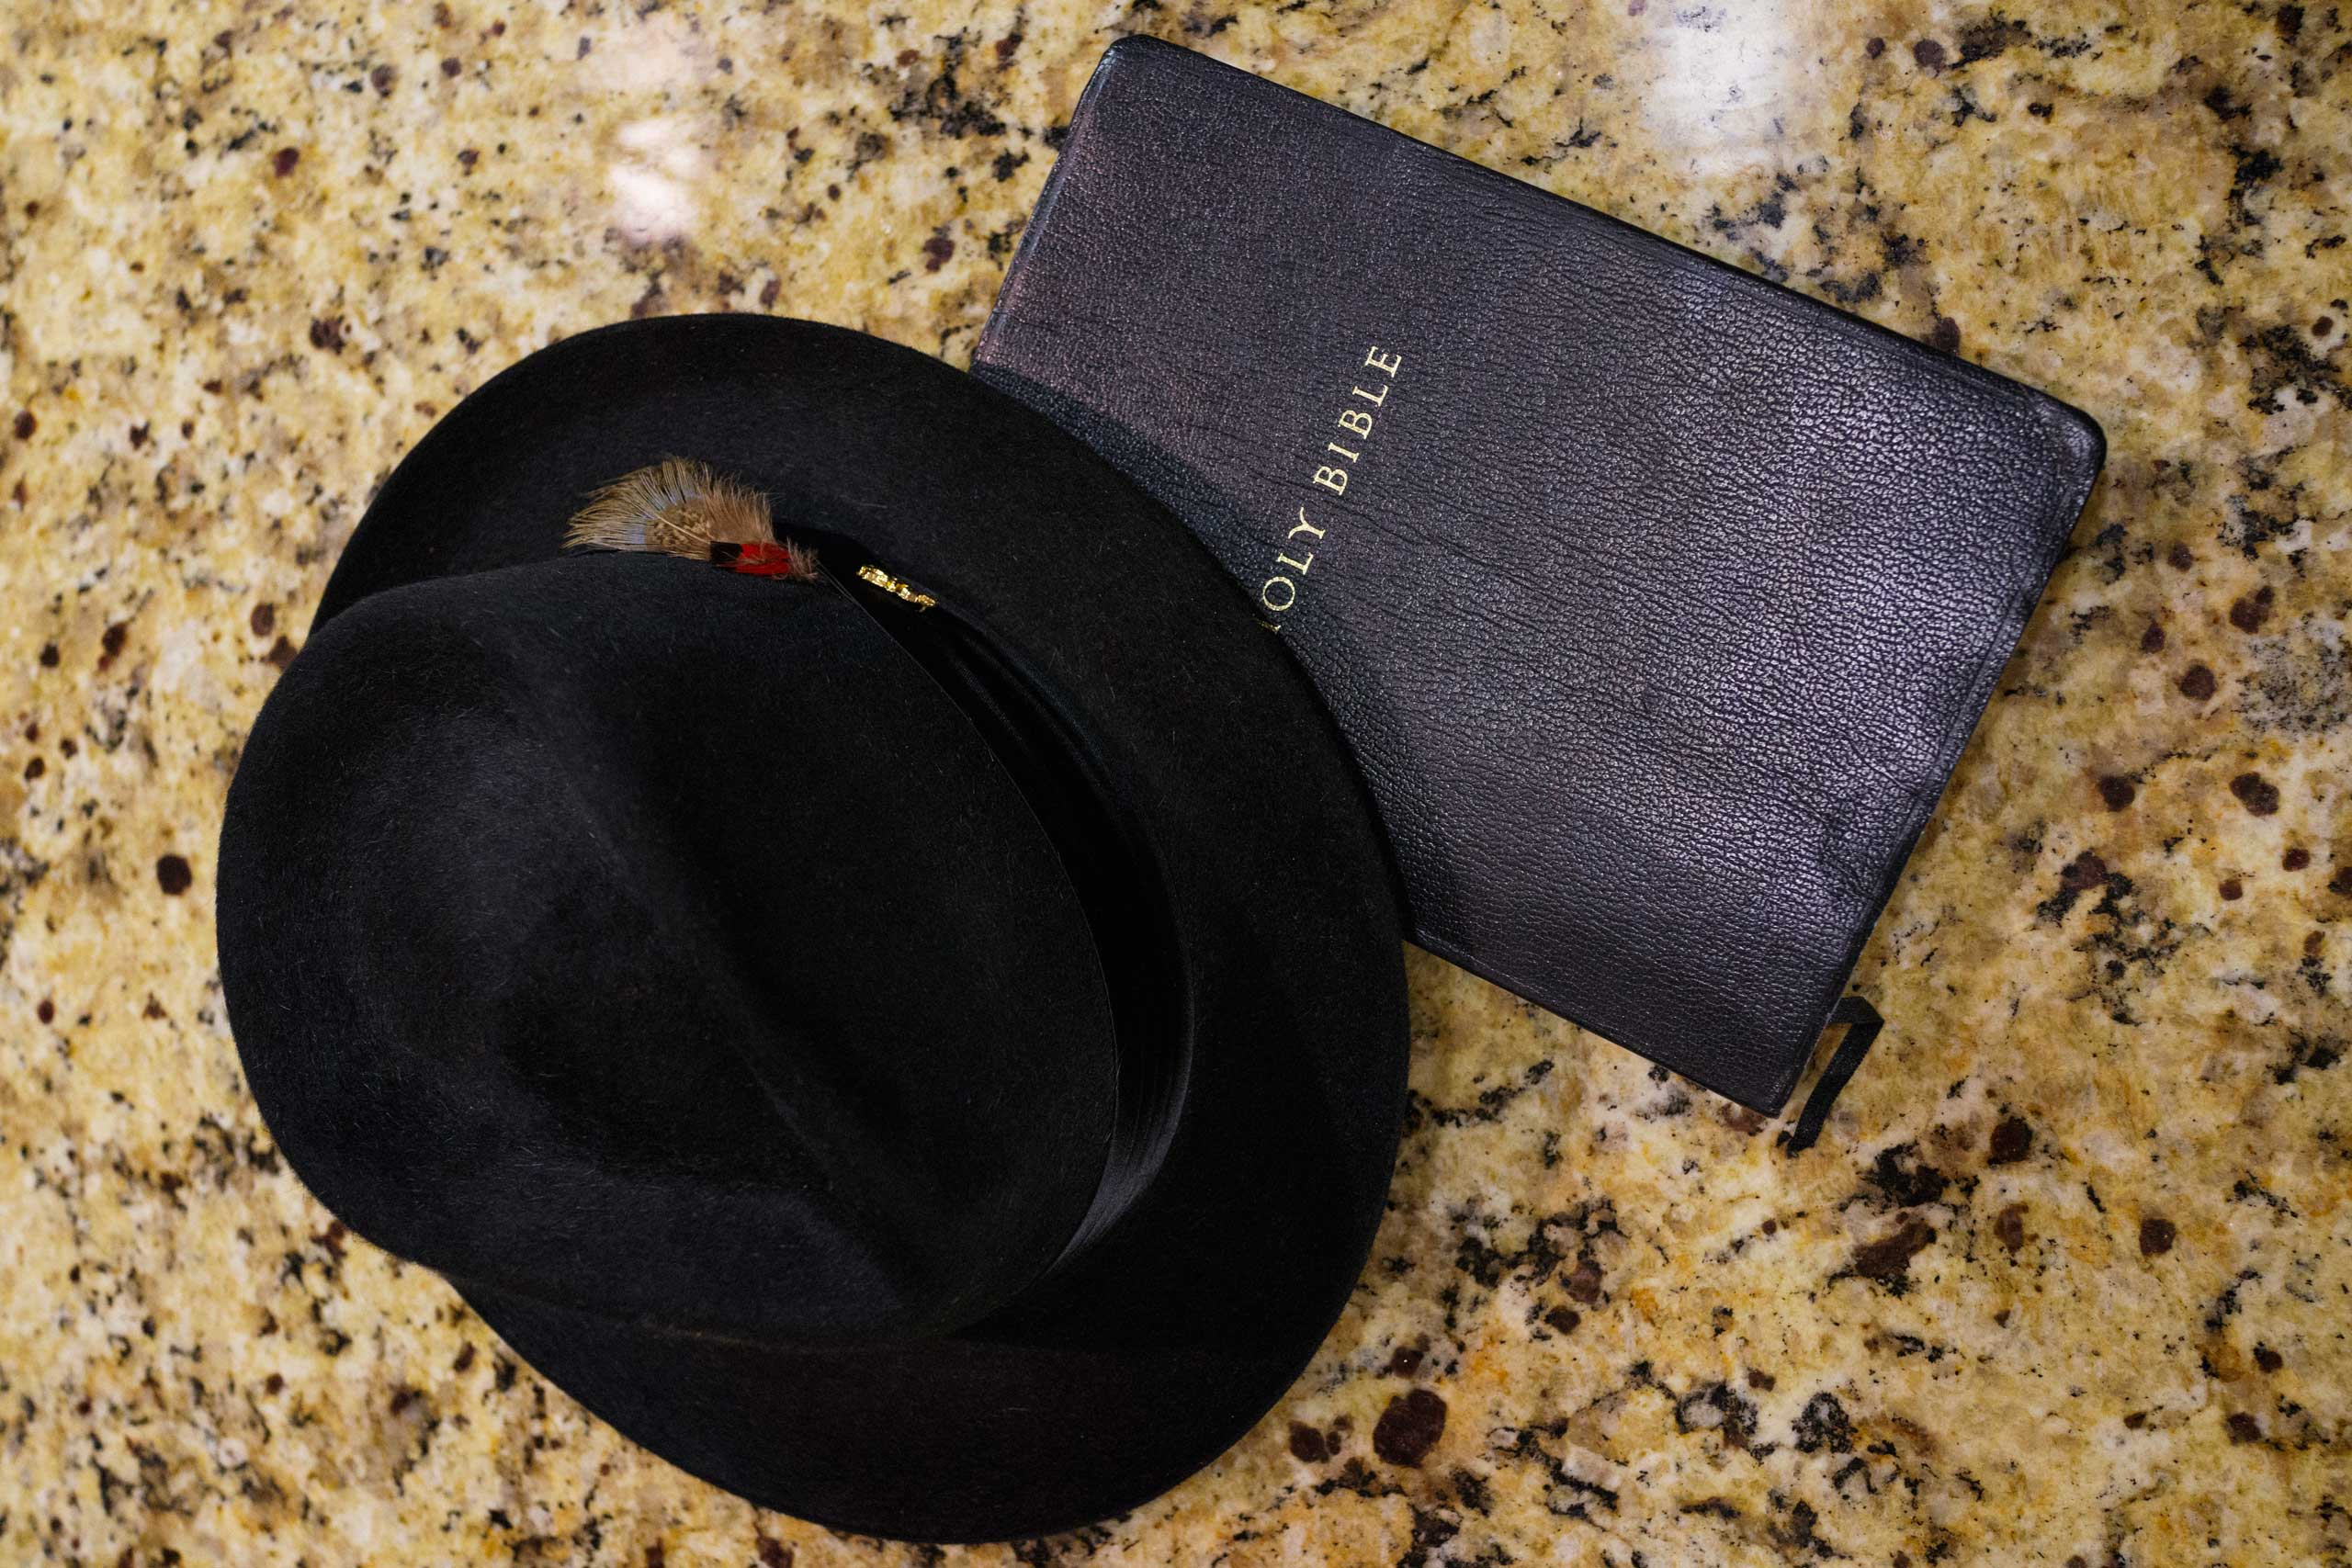 Pete Garrett's hat and bible rest on the kitchen counter of his home in Trussvile, Ala.